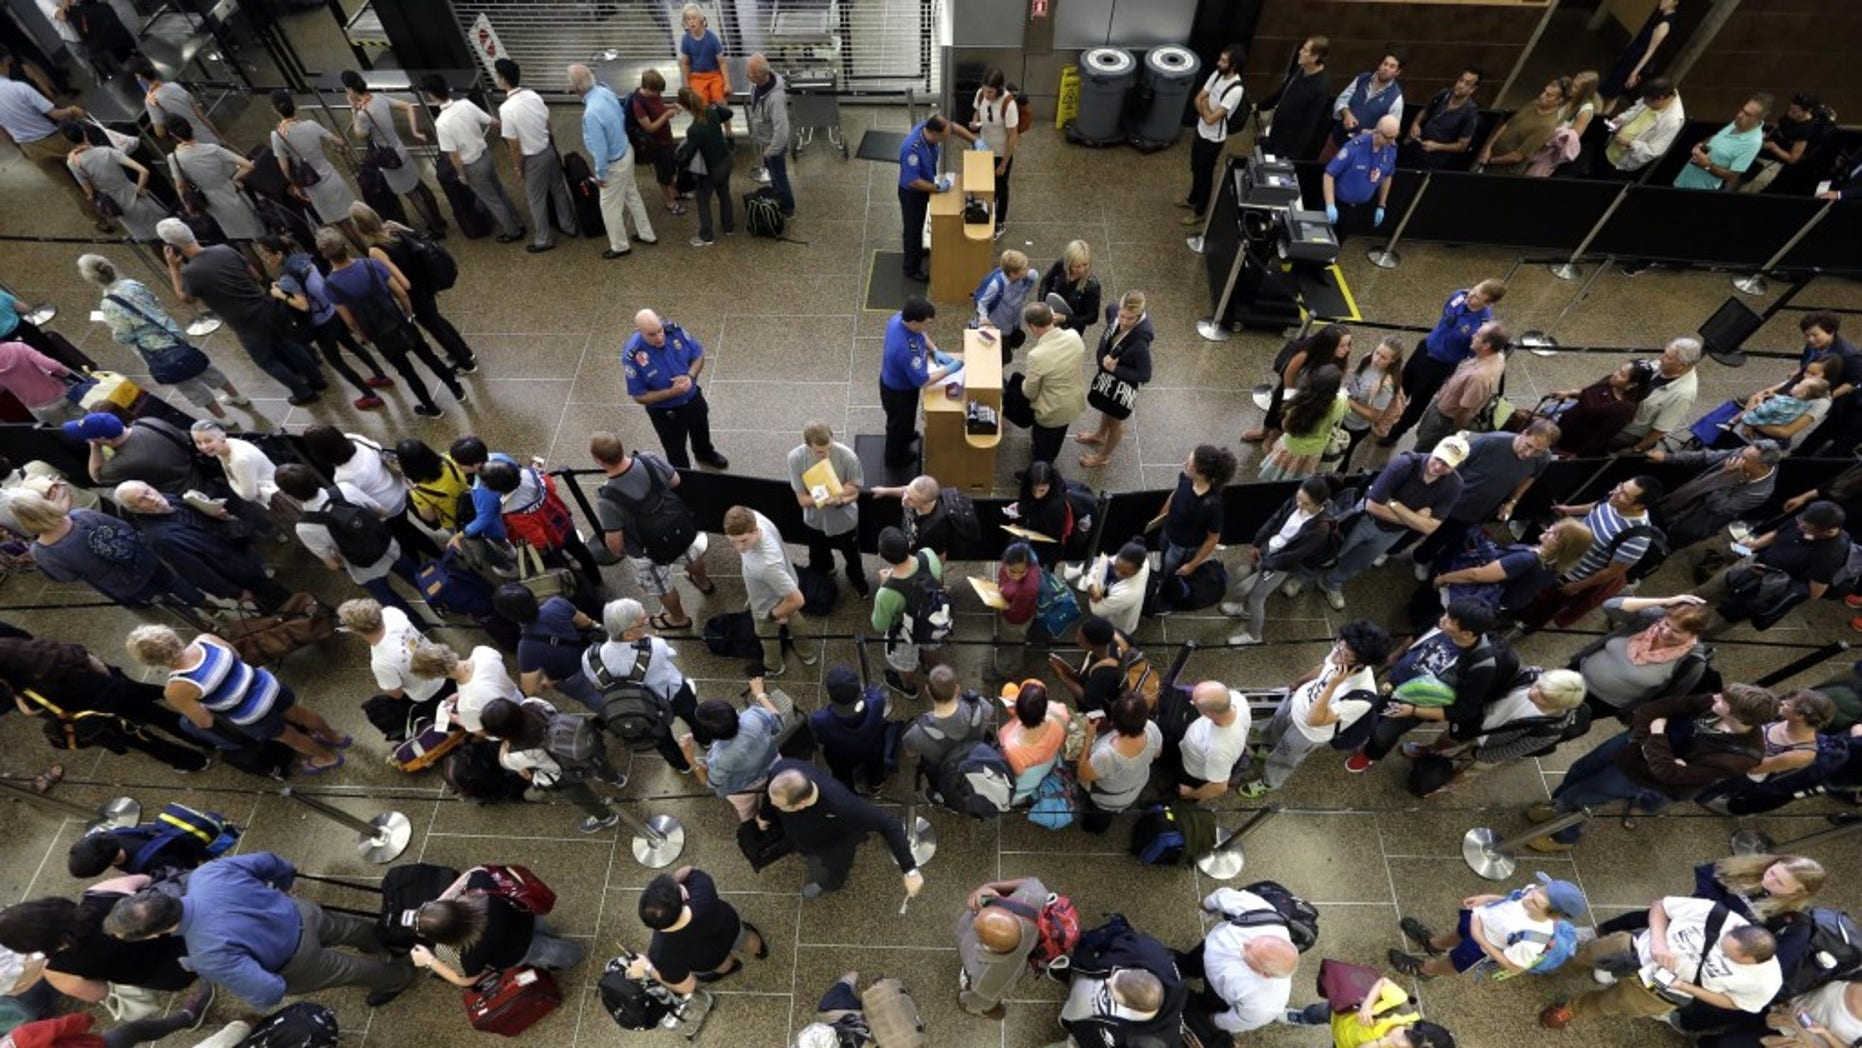 Have you been stuck in a never ending TSA line?